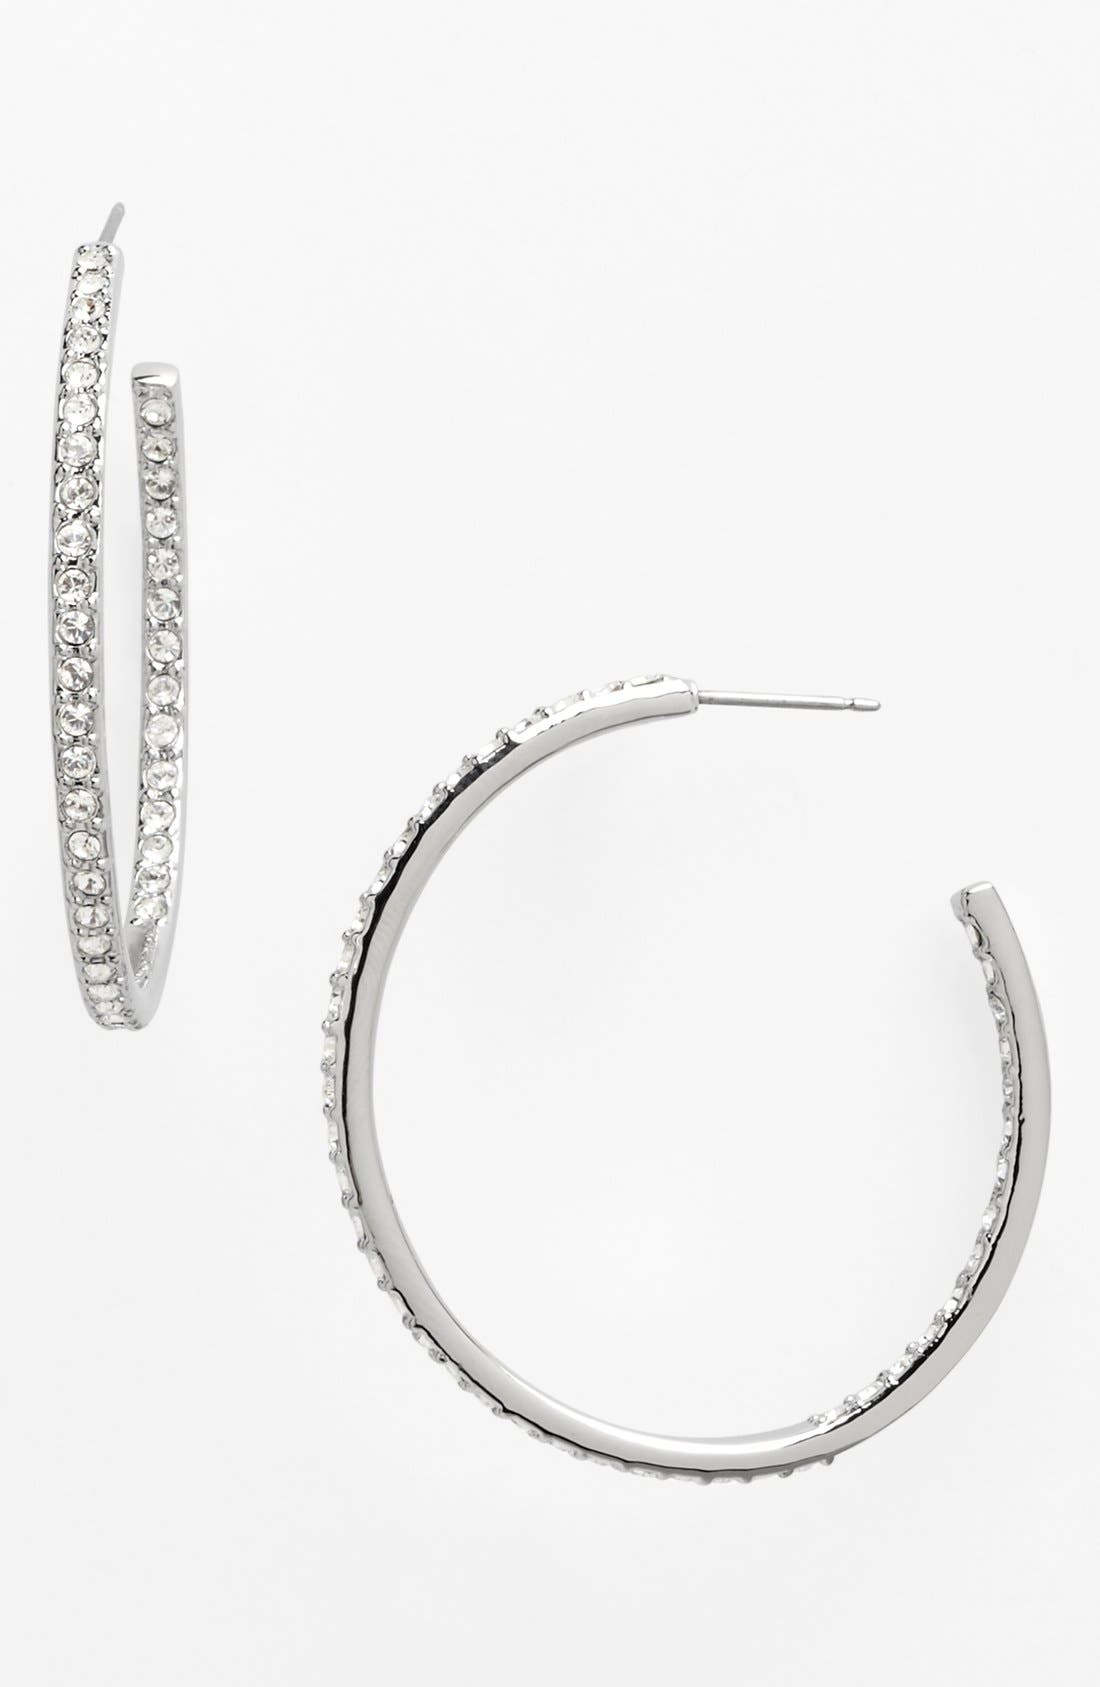 Main Image - Givenchy Large Inside Out Hoop Earrings